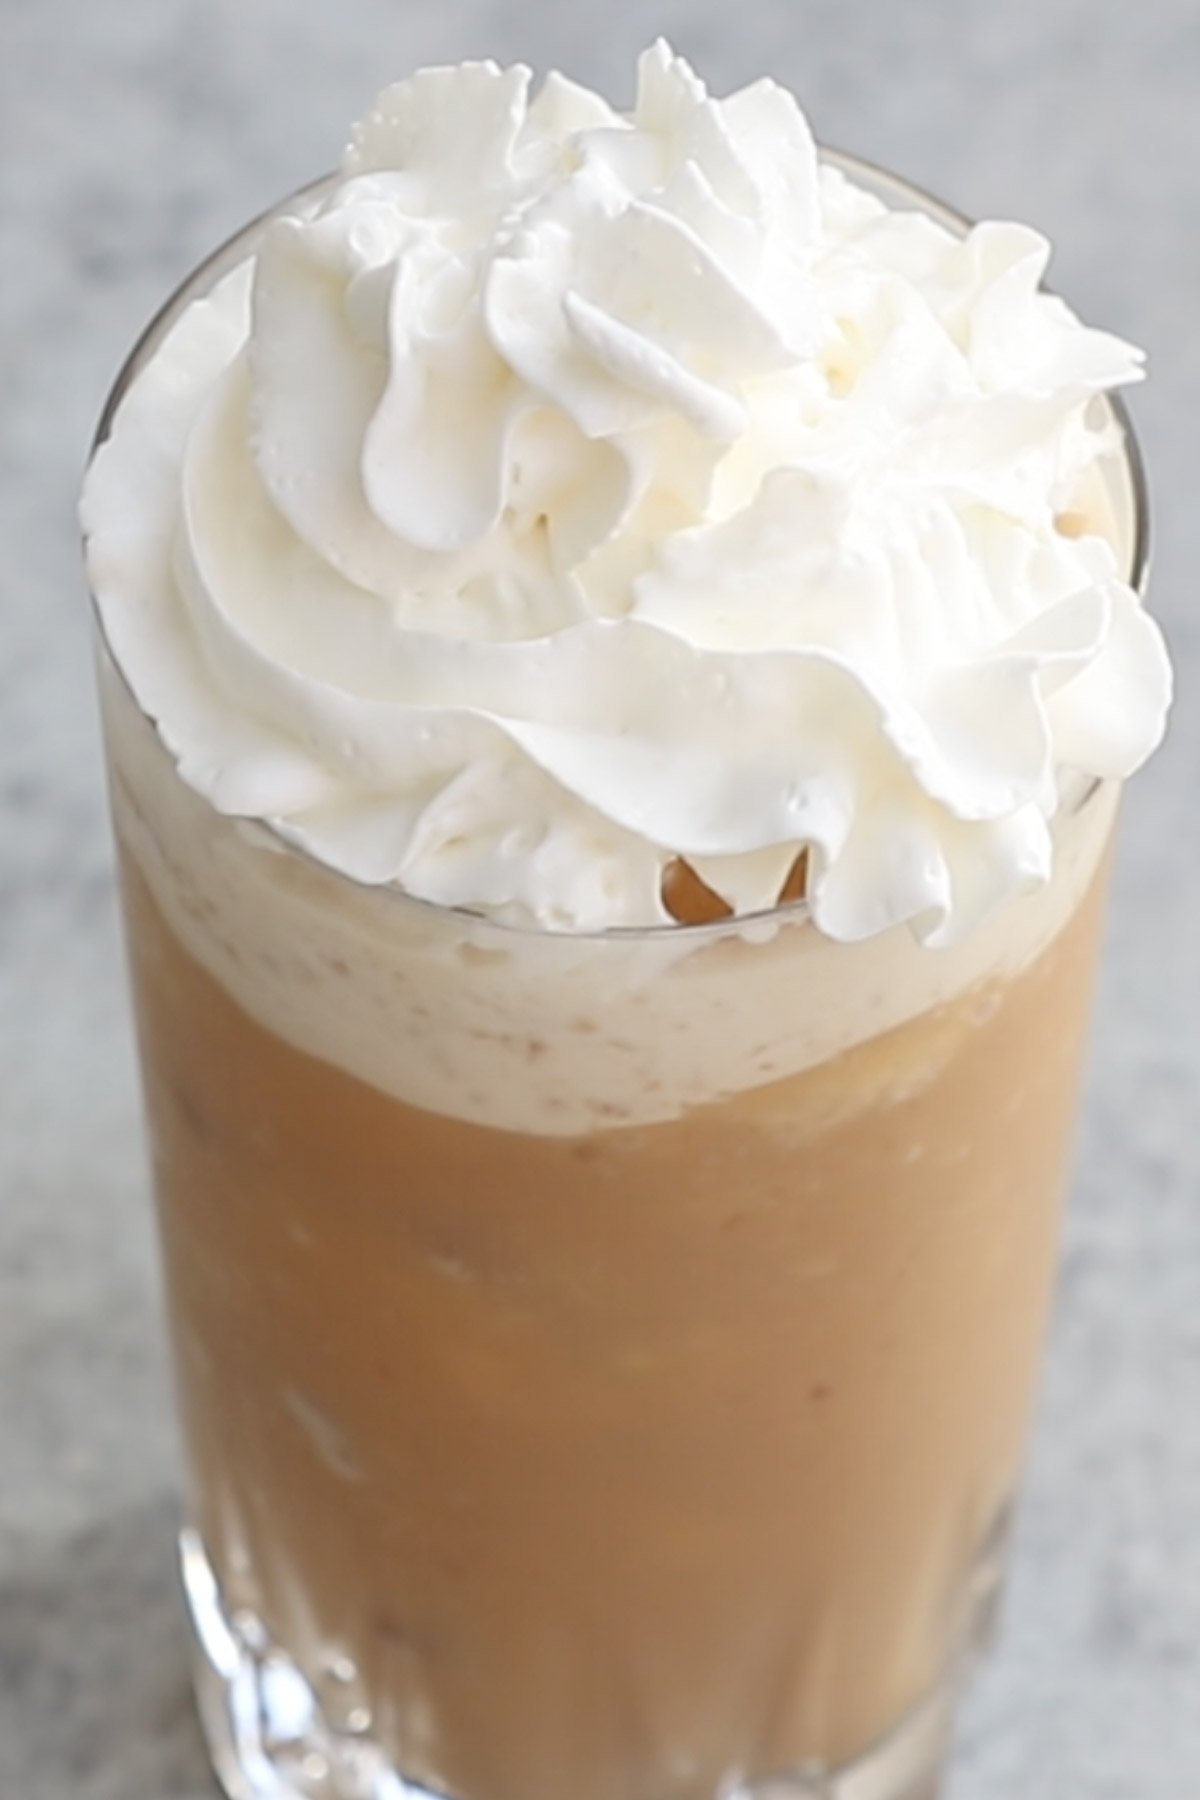 This homemade Caramel Frappe is the perfect iced treat to satisfy your cravings for a refreshing and sweet beverage with a caffeine kick. Your days of needing to run out to Starbucks for your Caramel Frappuccino fix will be over when you realize how easily you can make this copycat recipe at home. Top your coffee drink with whipped cream and drizzle with additional caramel sauce!